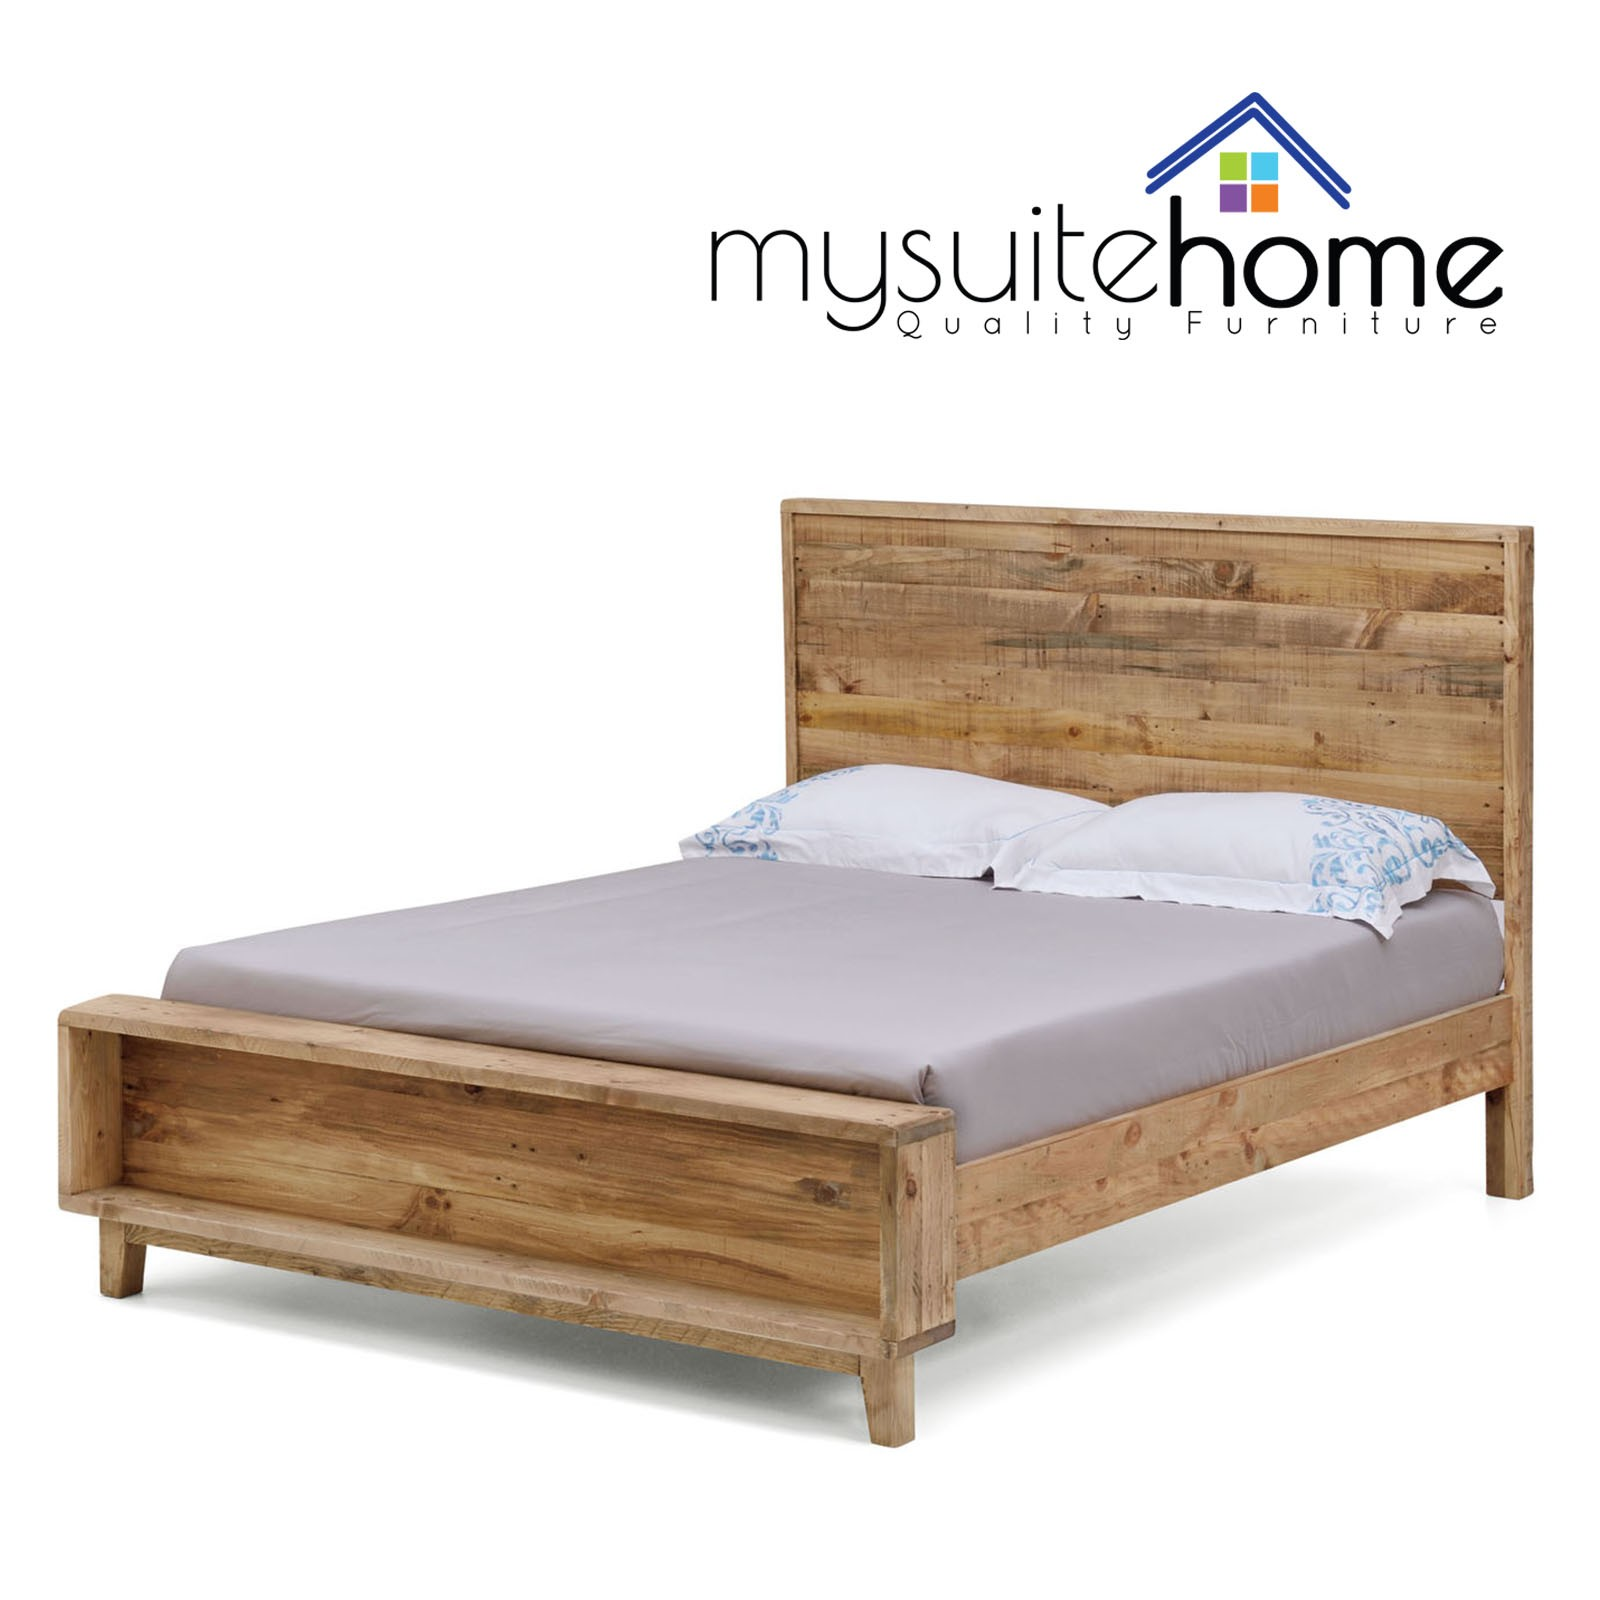 Portland Brand New Recycled Solid Pine Rustic Timber Queen Size Bed Frame